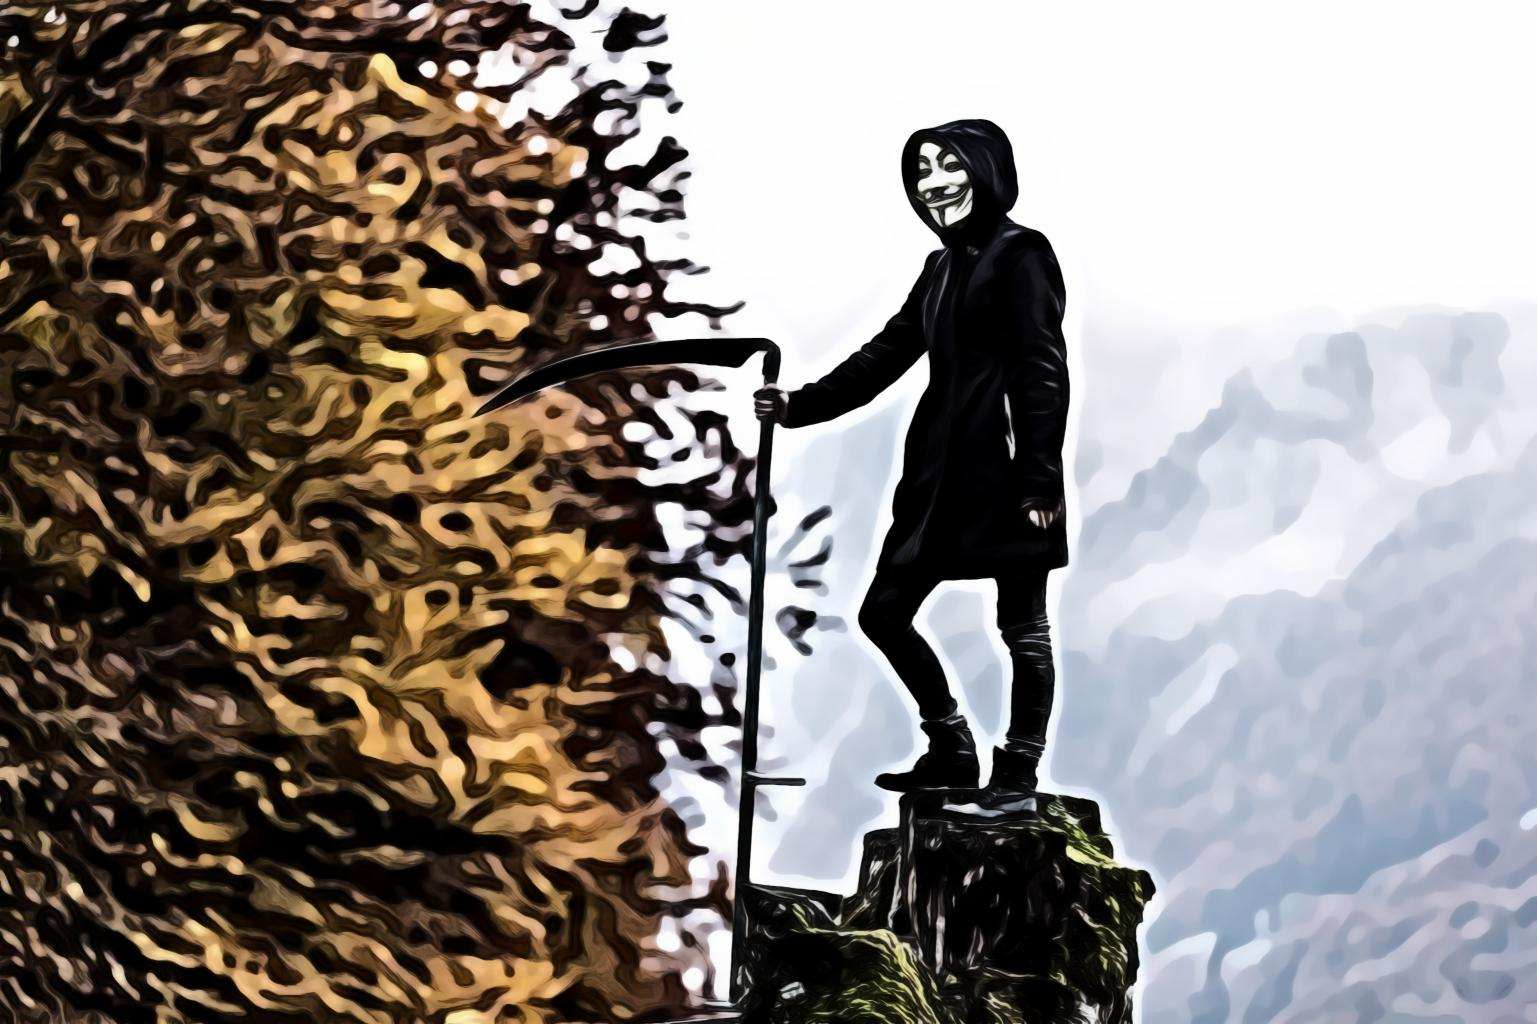 Person wearing guy fawkes mask while holding scythe